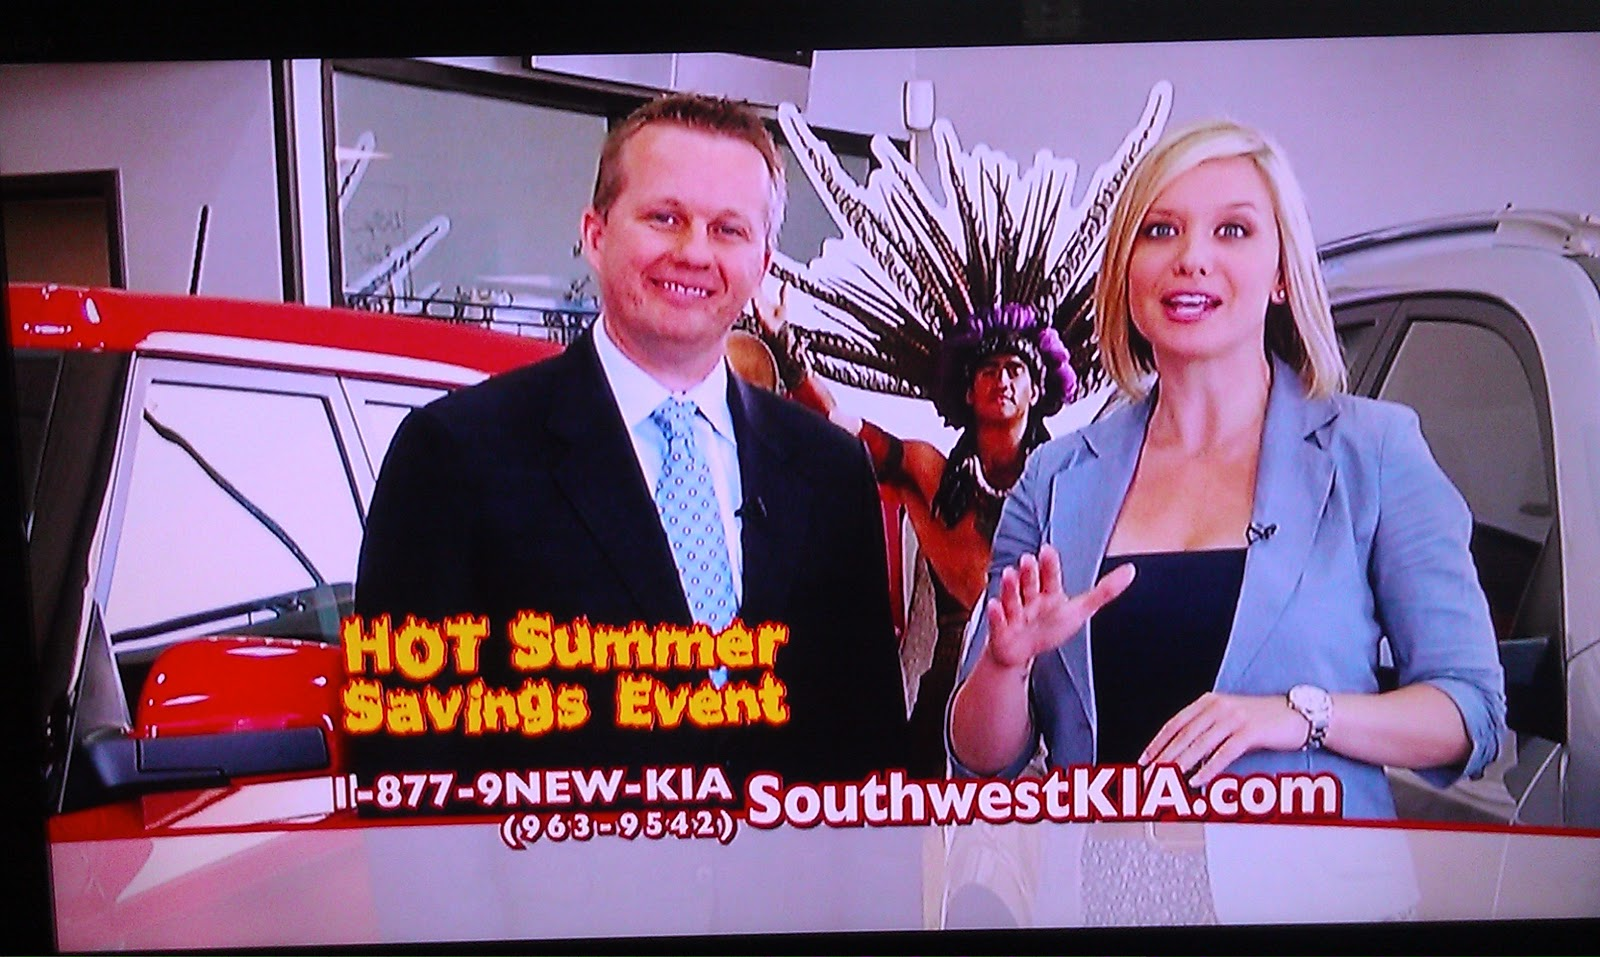 Is It Just Me or Is the Southwest Kia Girl Sneaky Hot?